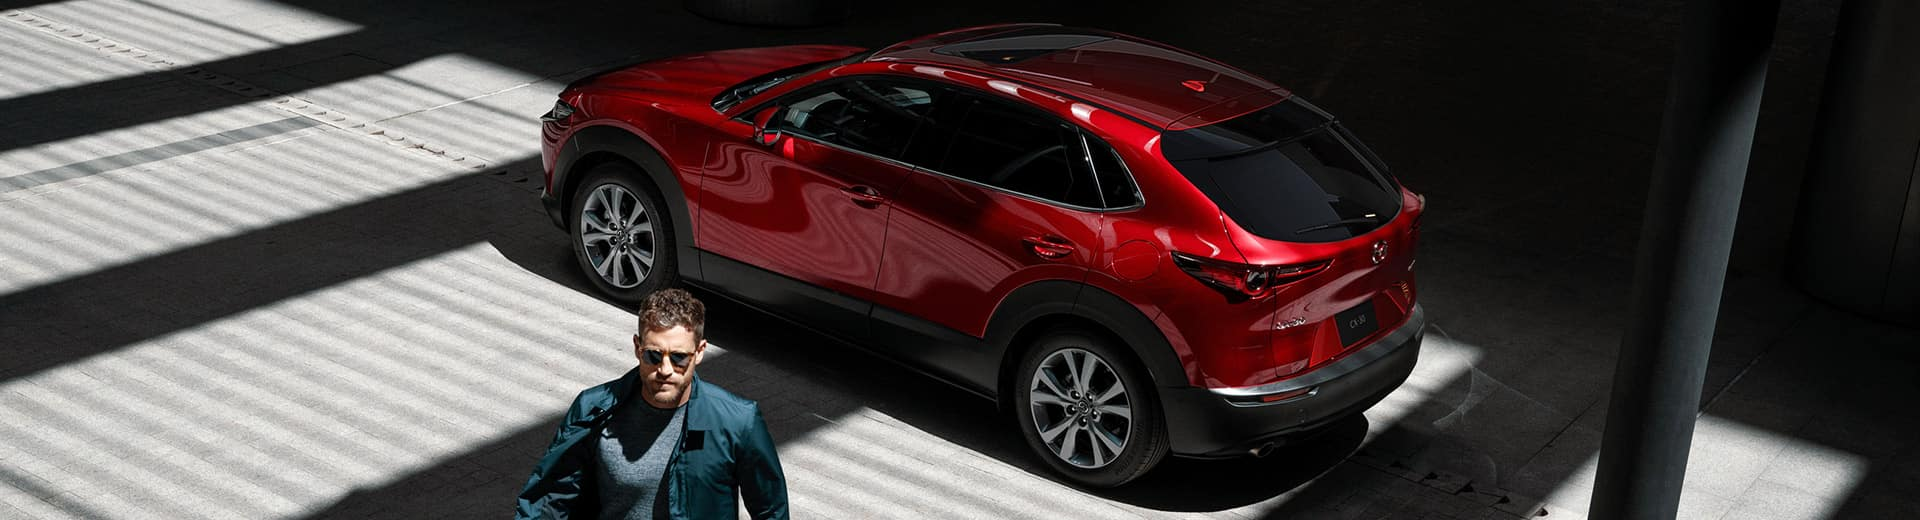 2020 Mazda CX-30 available in Canada early 2020